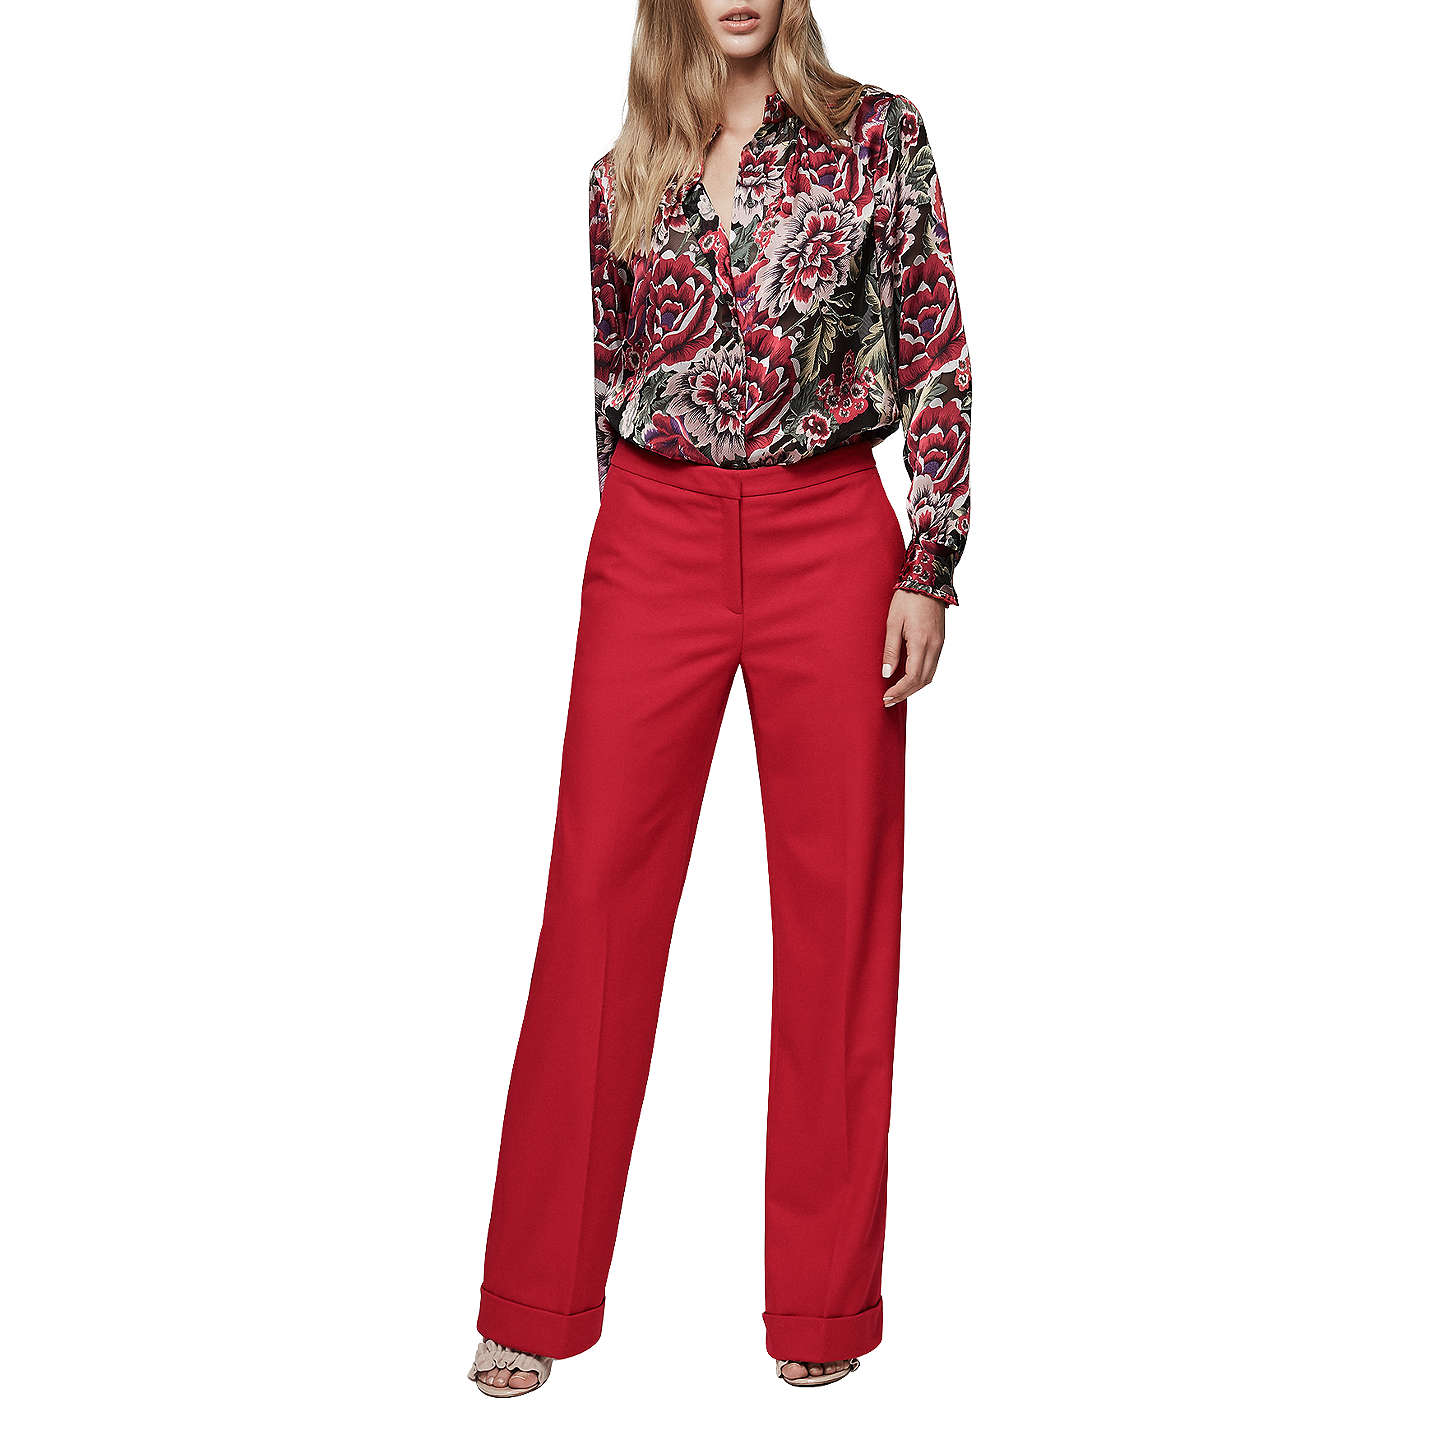 BuyReiss Carla Wool Blend Wide Leg Trousers, Maraschino, 6 Online at johnlewis.com